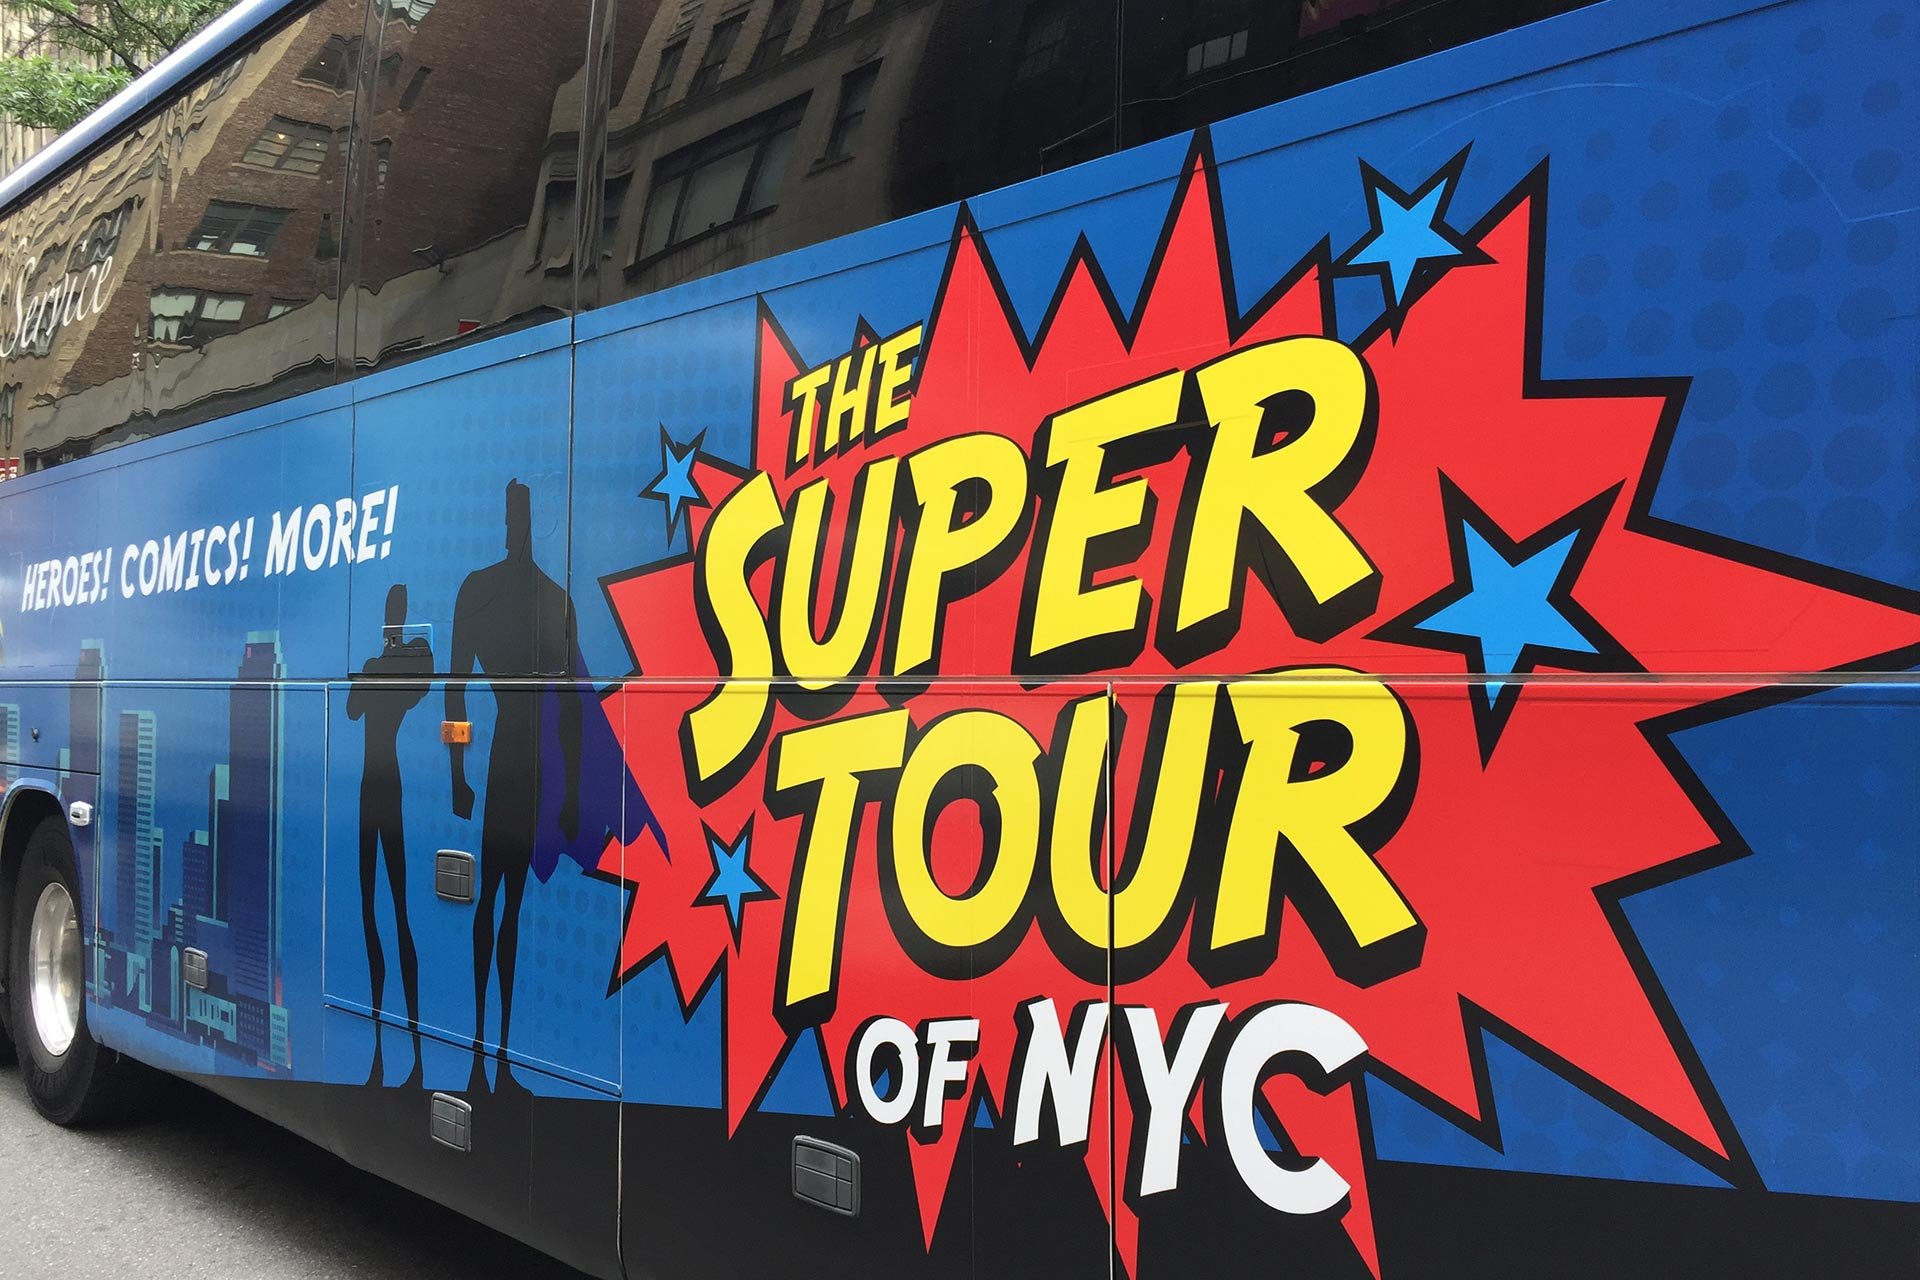 Superhero Movie Tour of New York